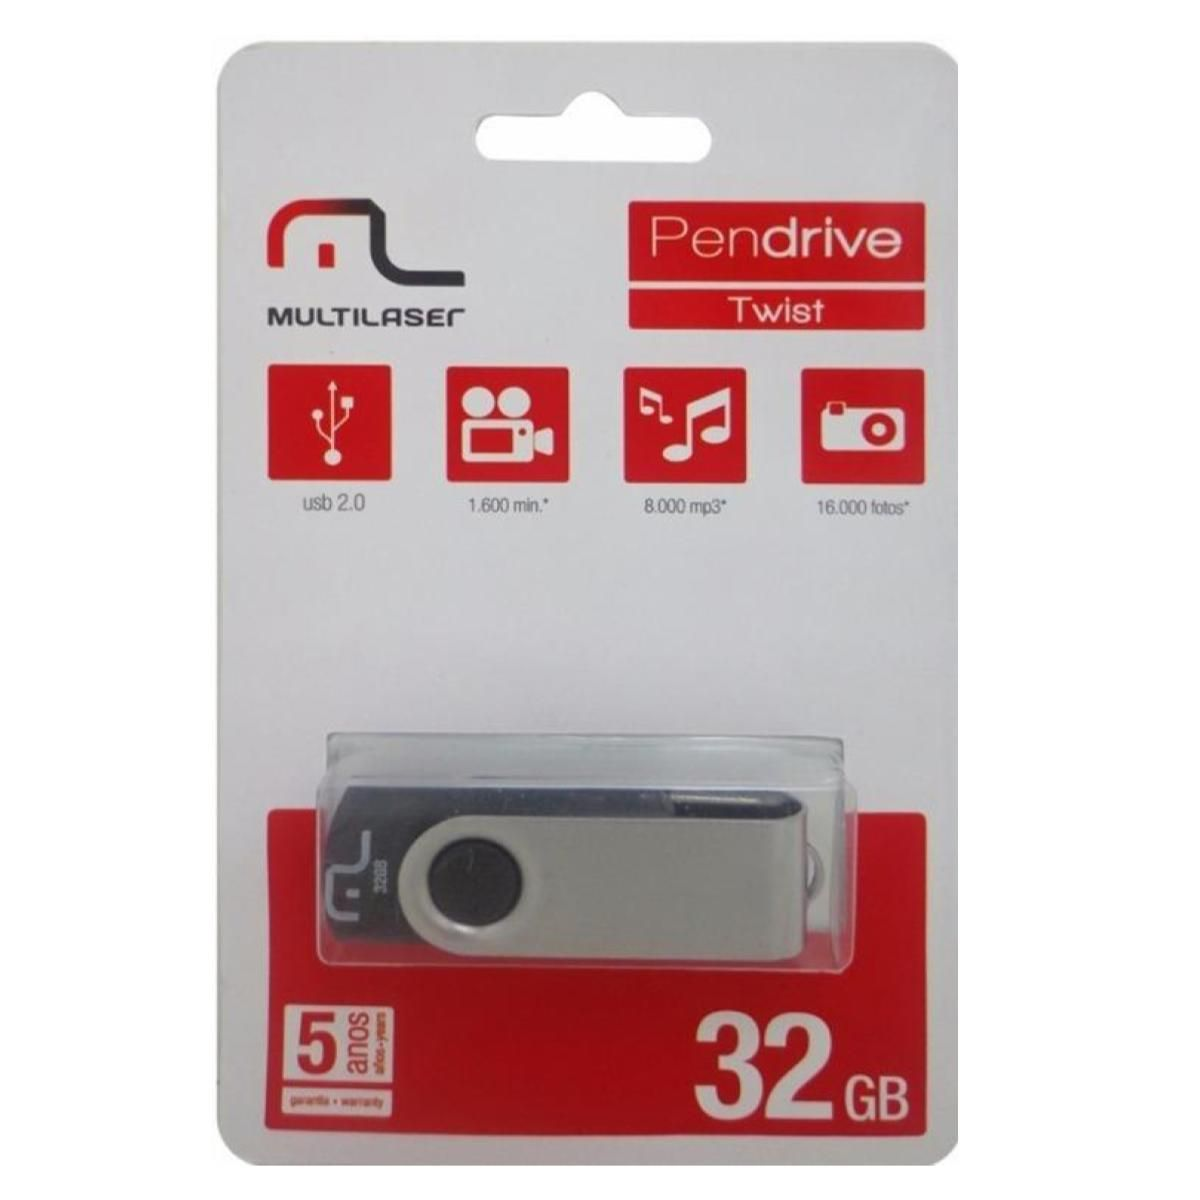 Pendrive 32GB Multilaser